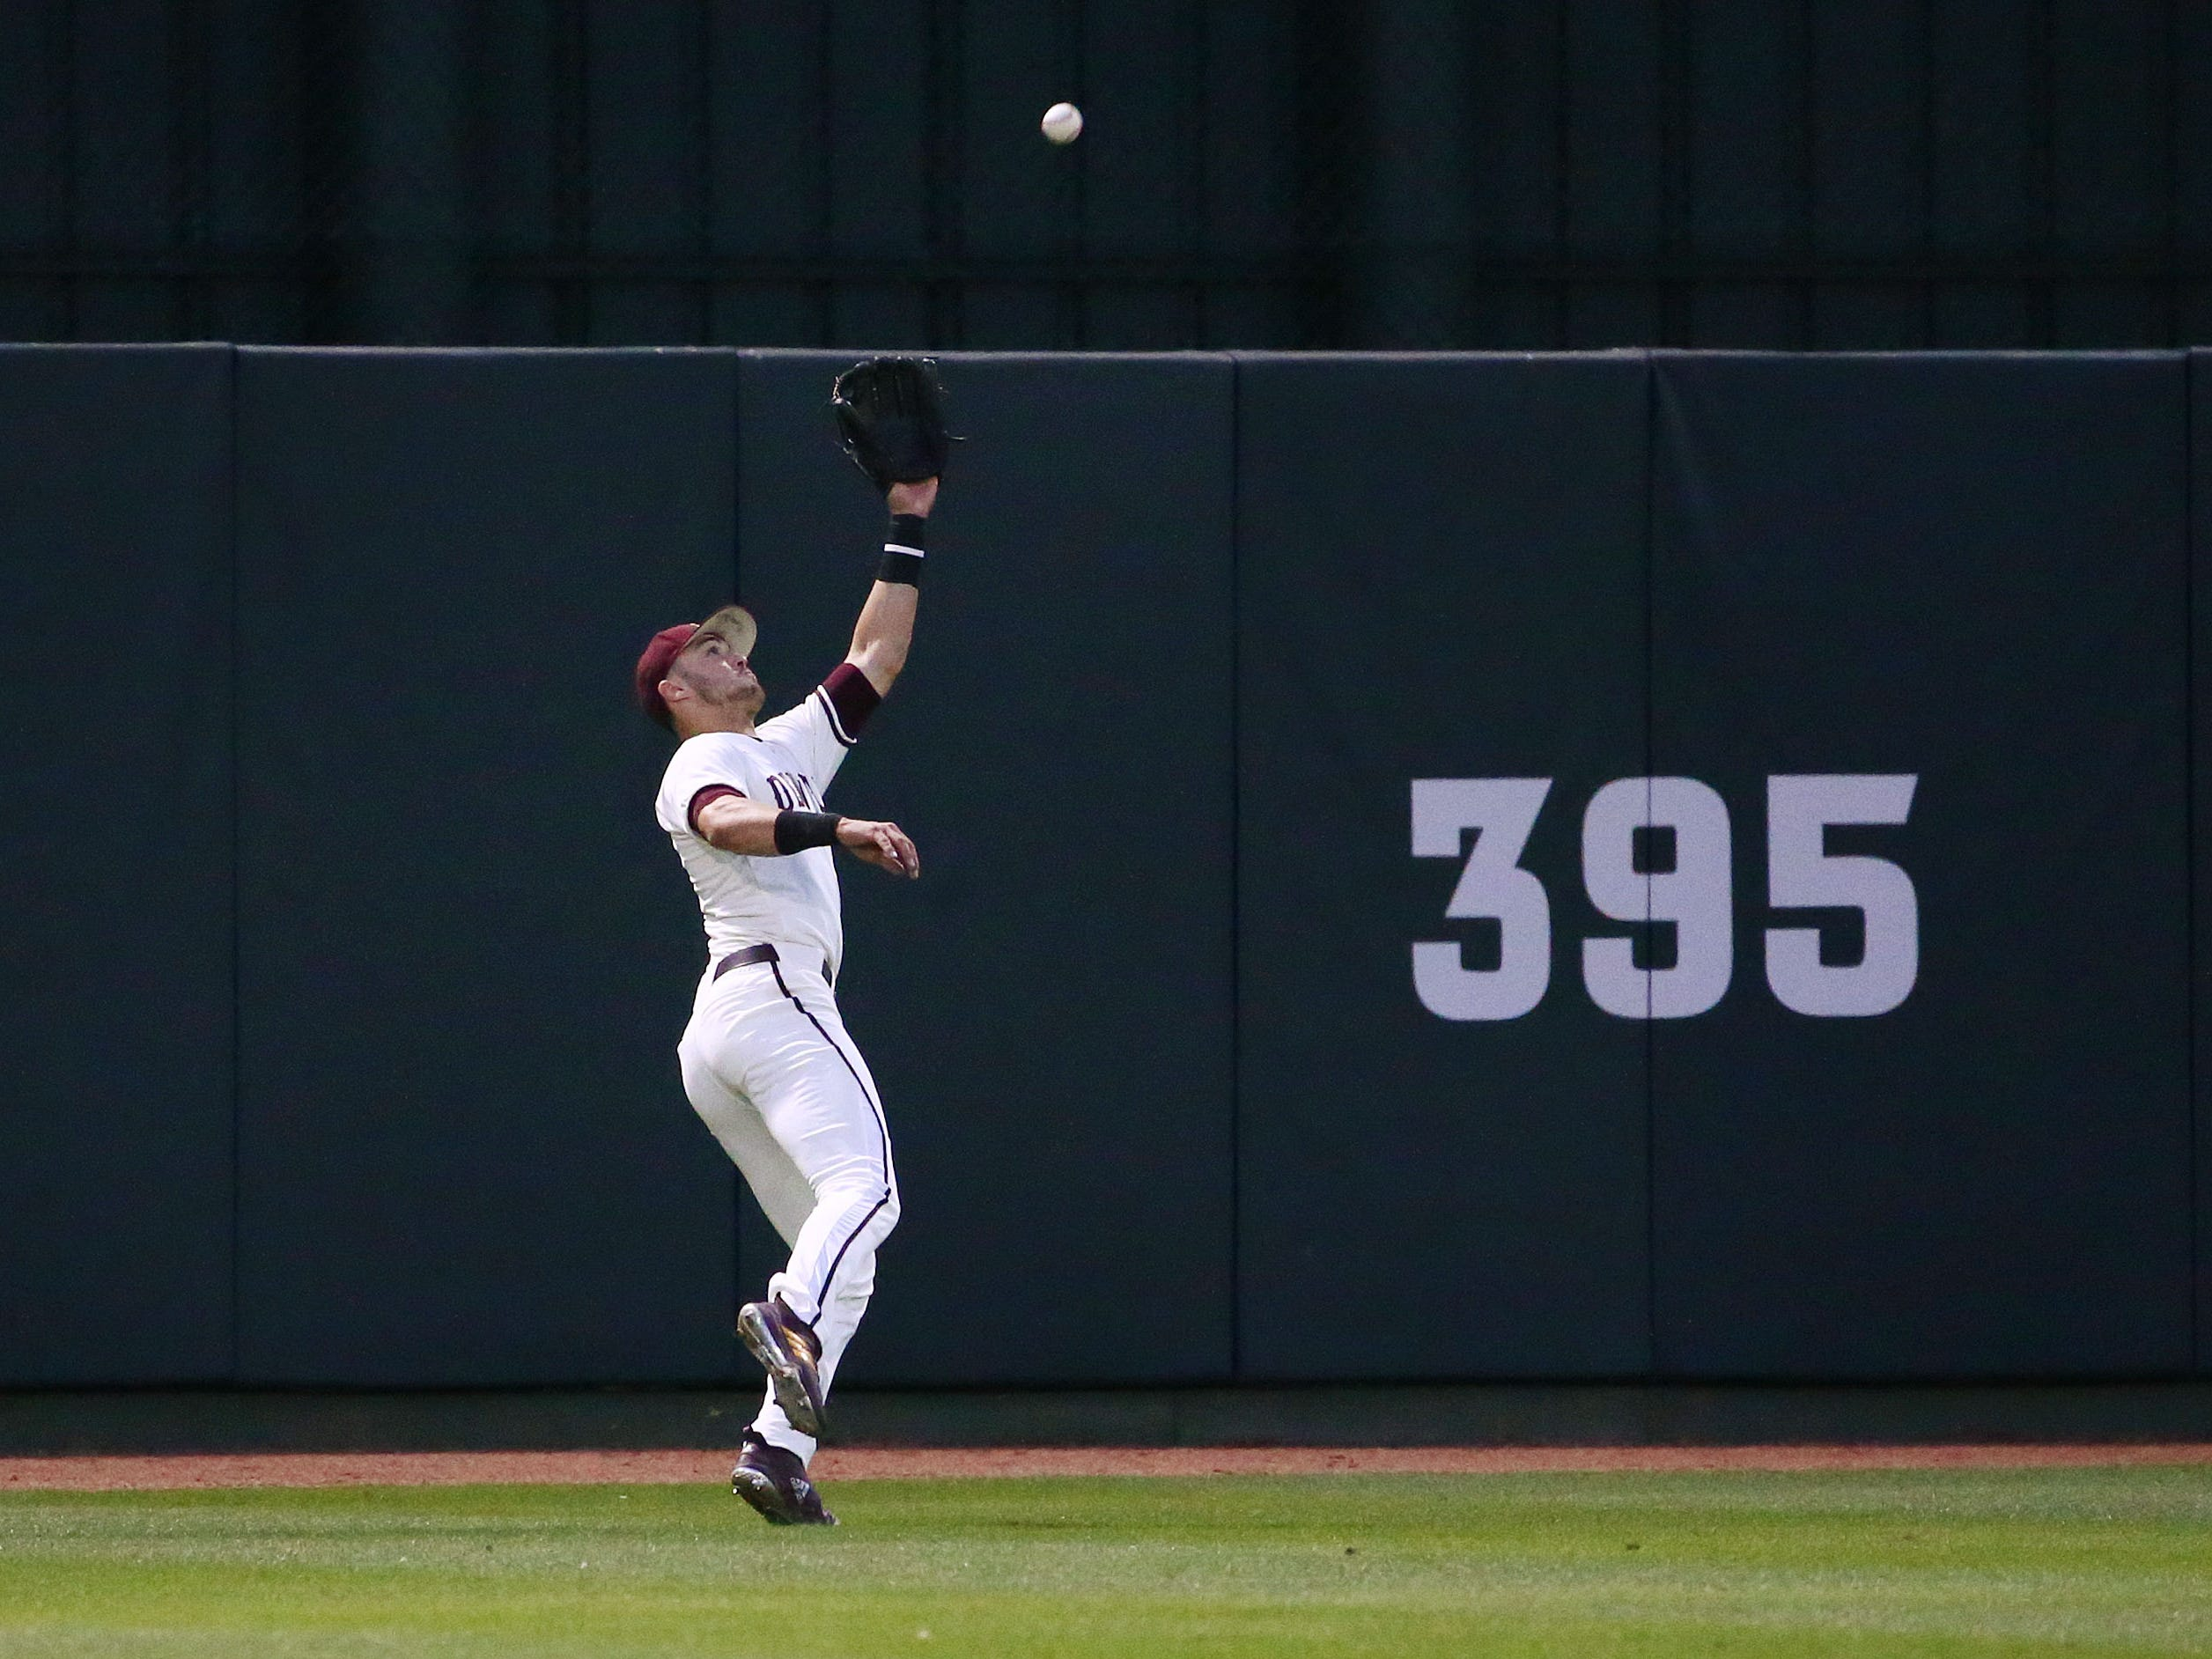 Arizona State Sun Devils center fielder Hunter Bishop makes a catch on a fly ball from California Baptist Lancers John Glenn in the second inning at Phoenix Municipal Stadium on Mar. 20, 2019 in Phoenix, Ariz.